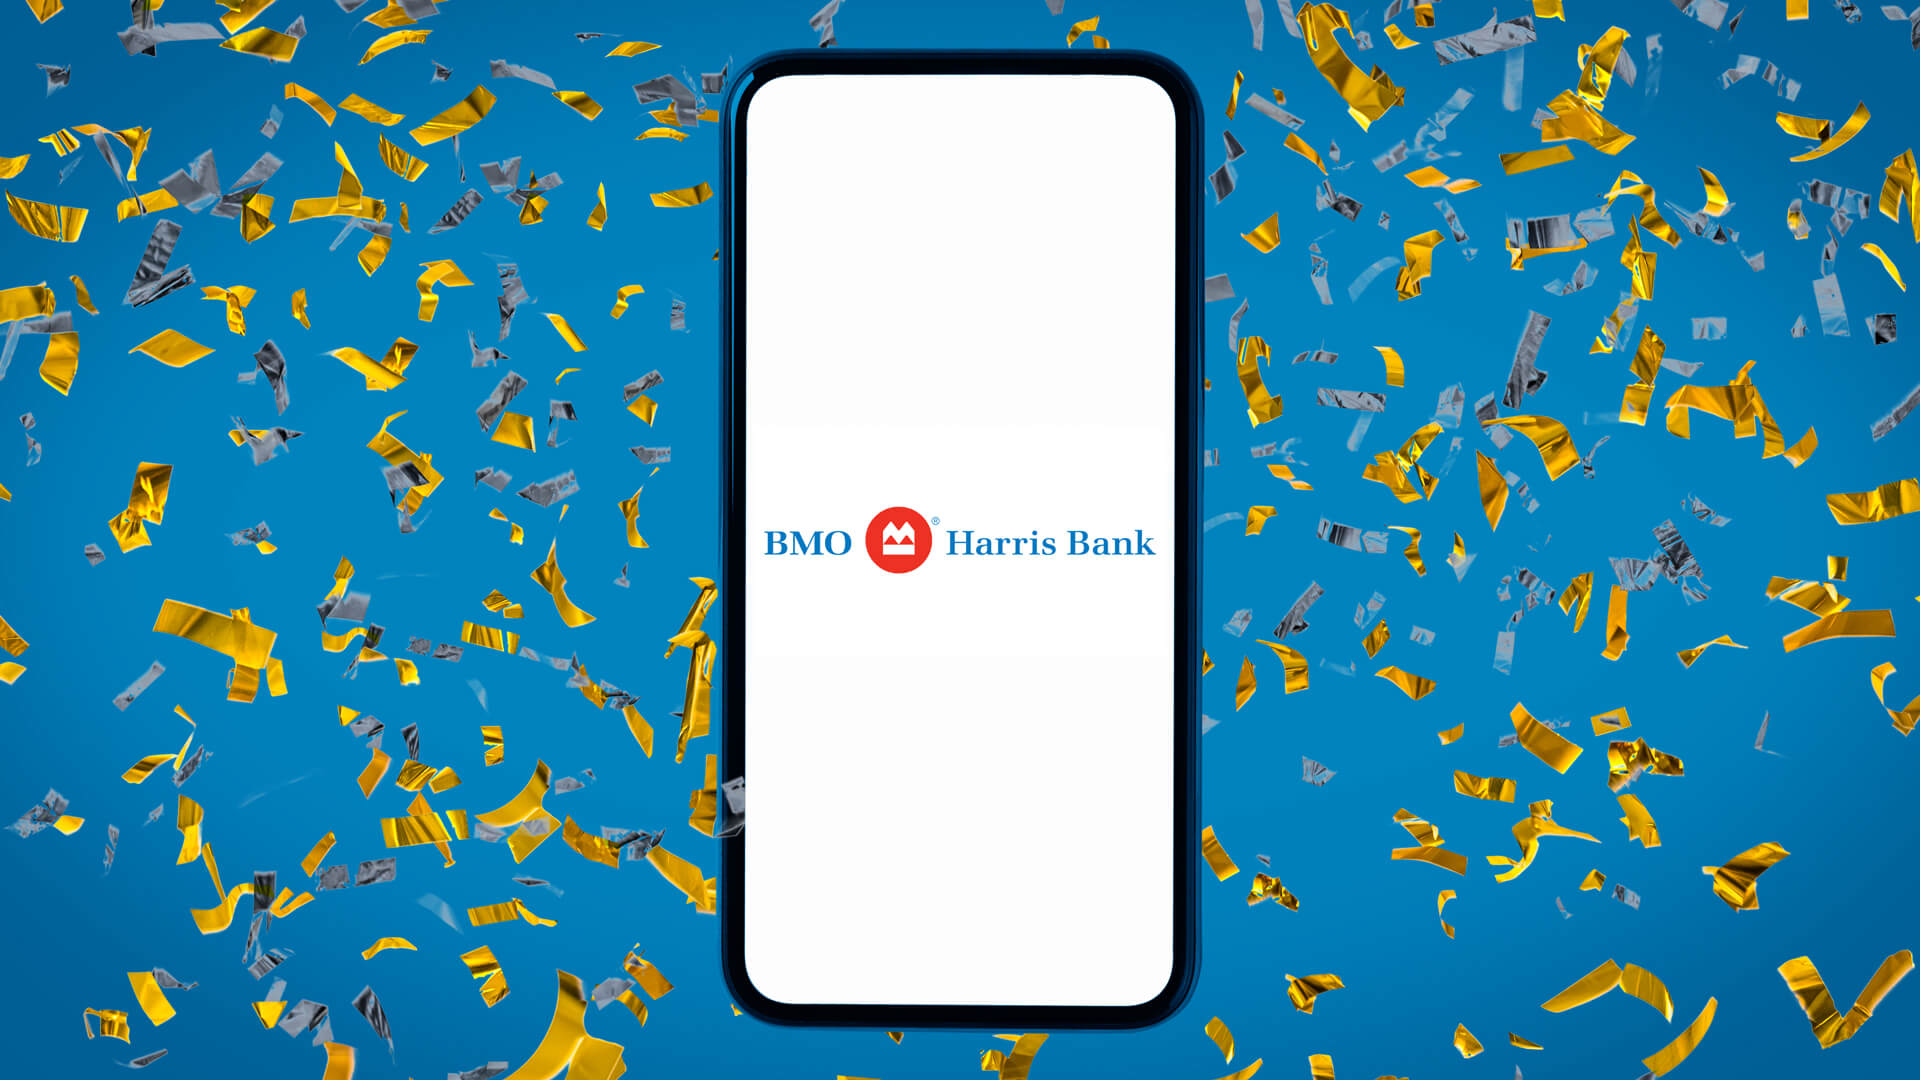 BMO Harris Bank promotions